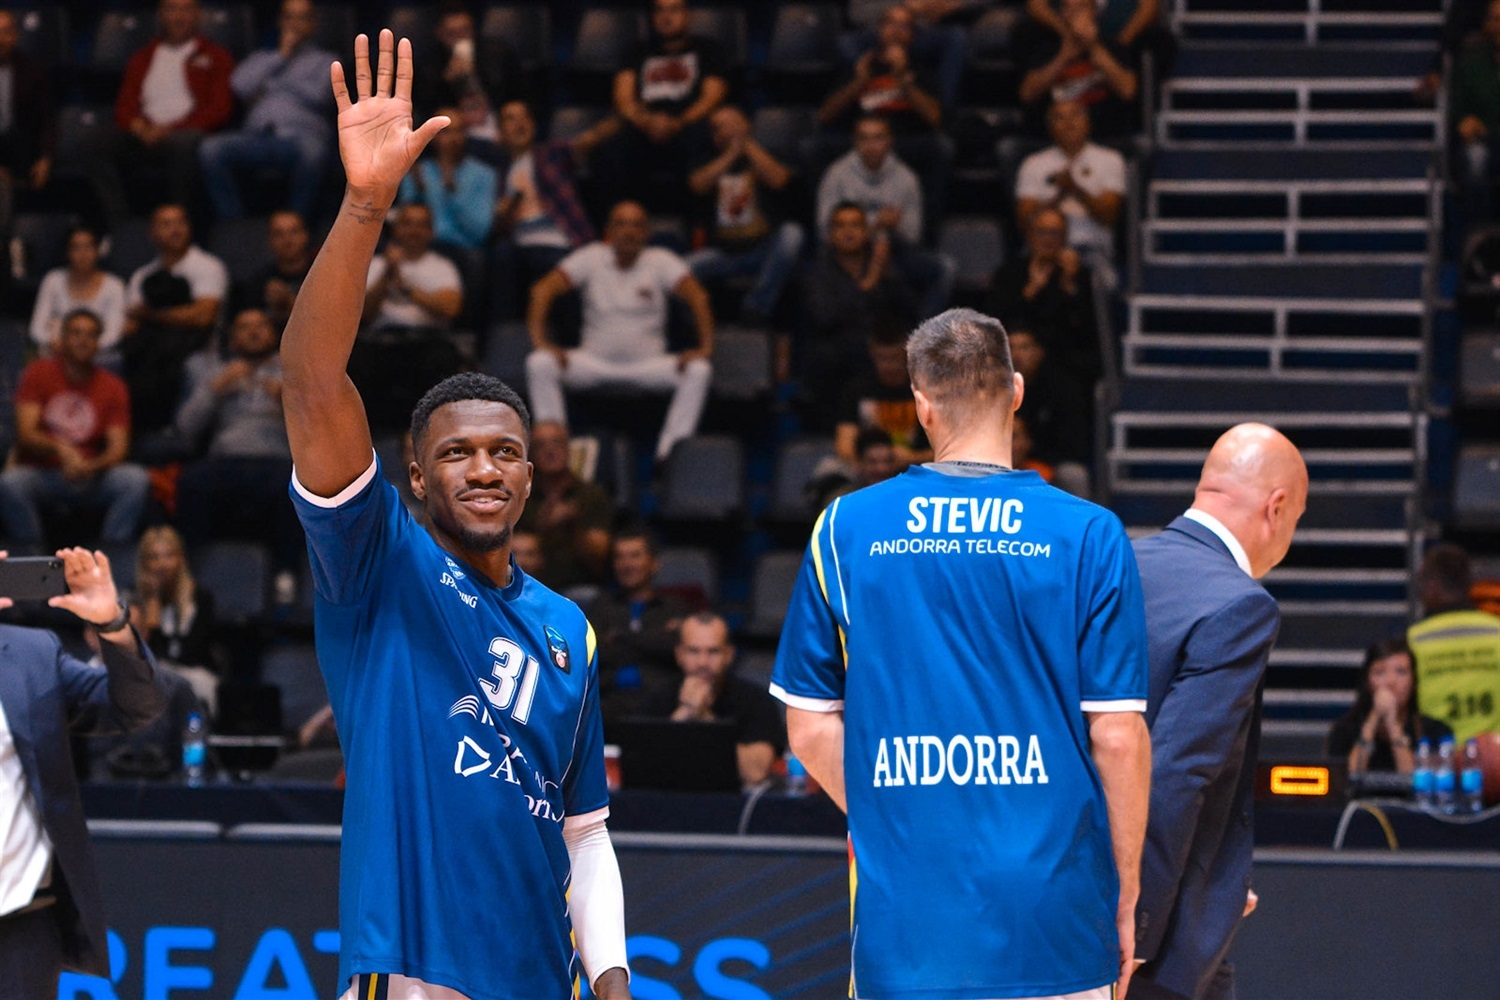 Dylan Ennis of MoraBanc Andorra return Belgrade (photo Zvezda) - EC18